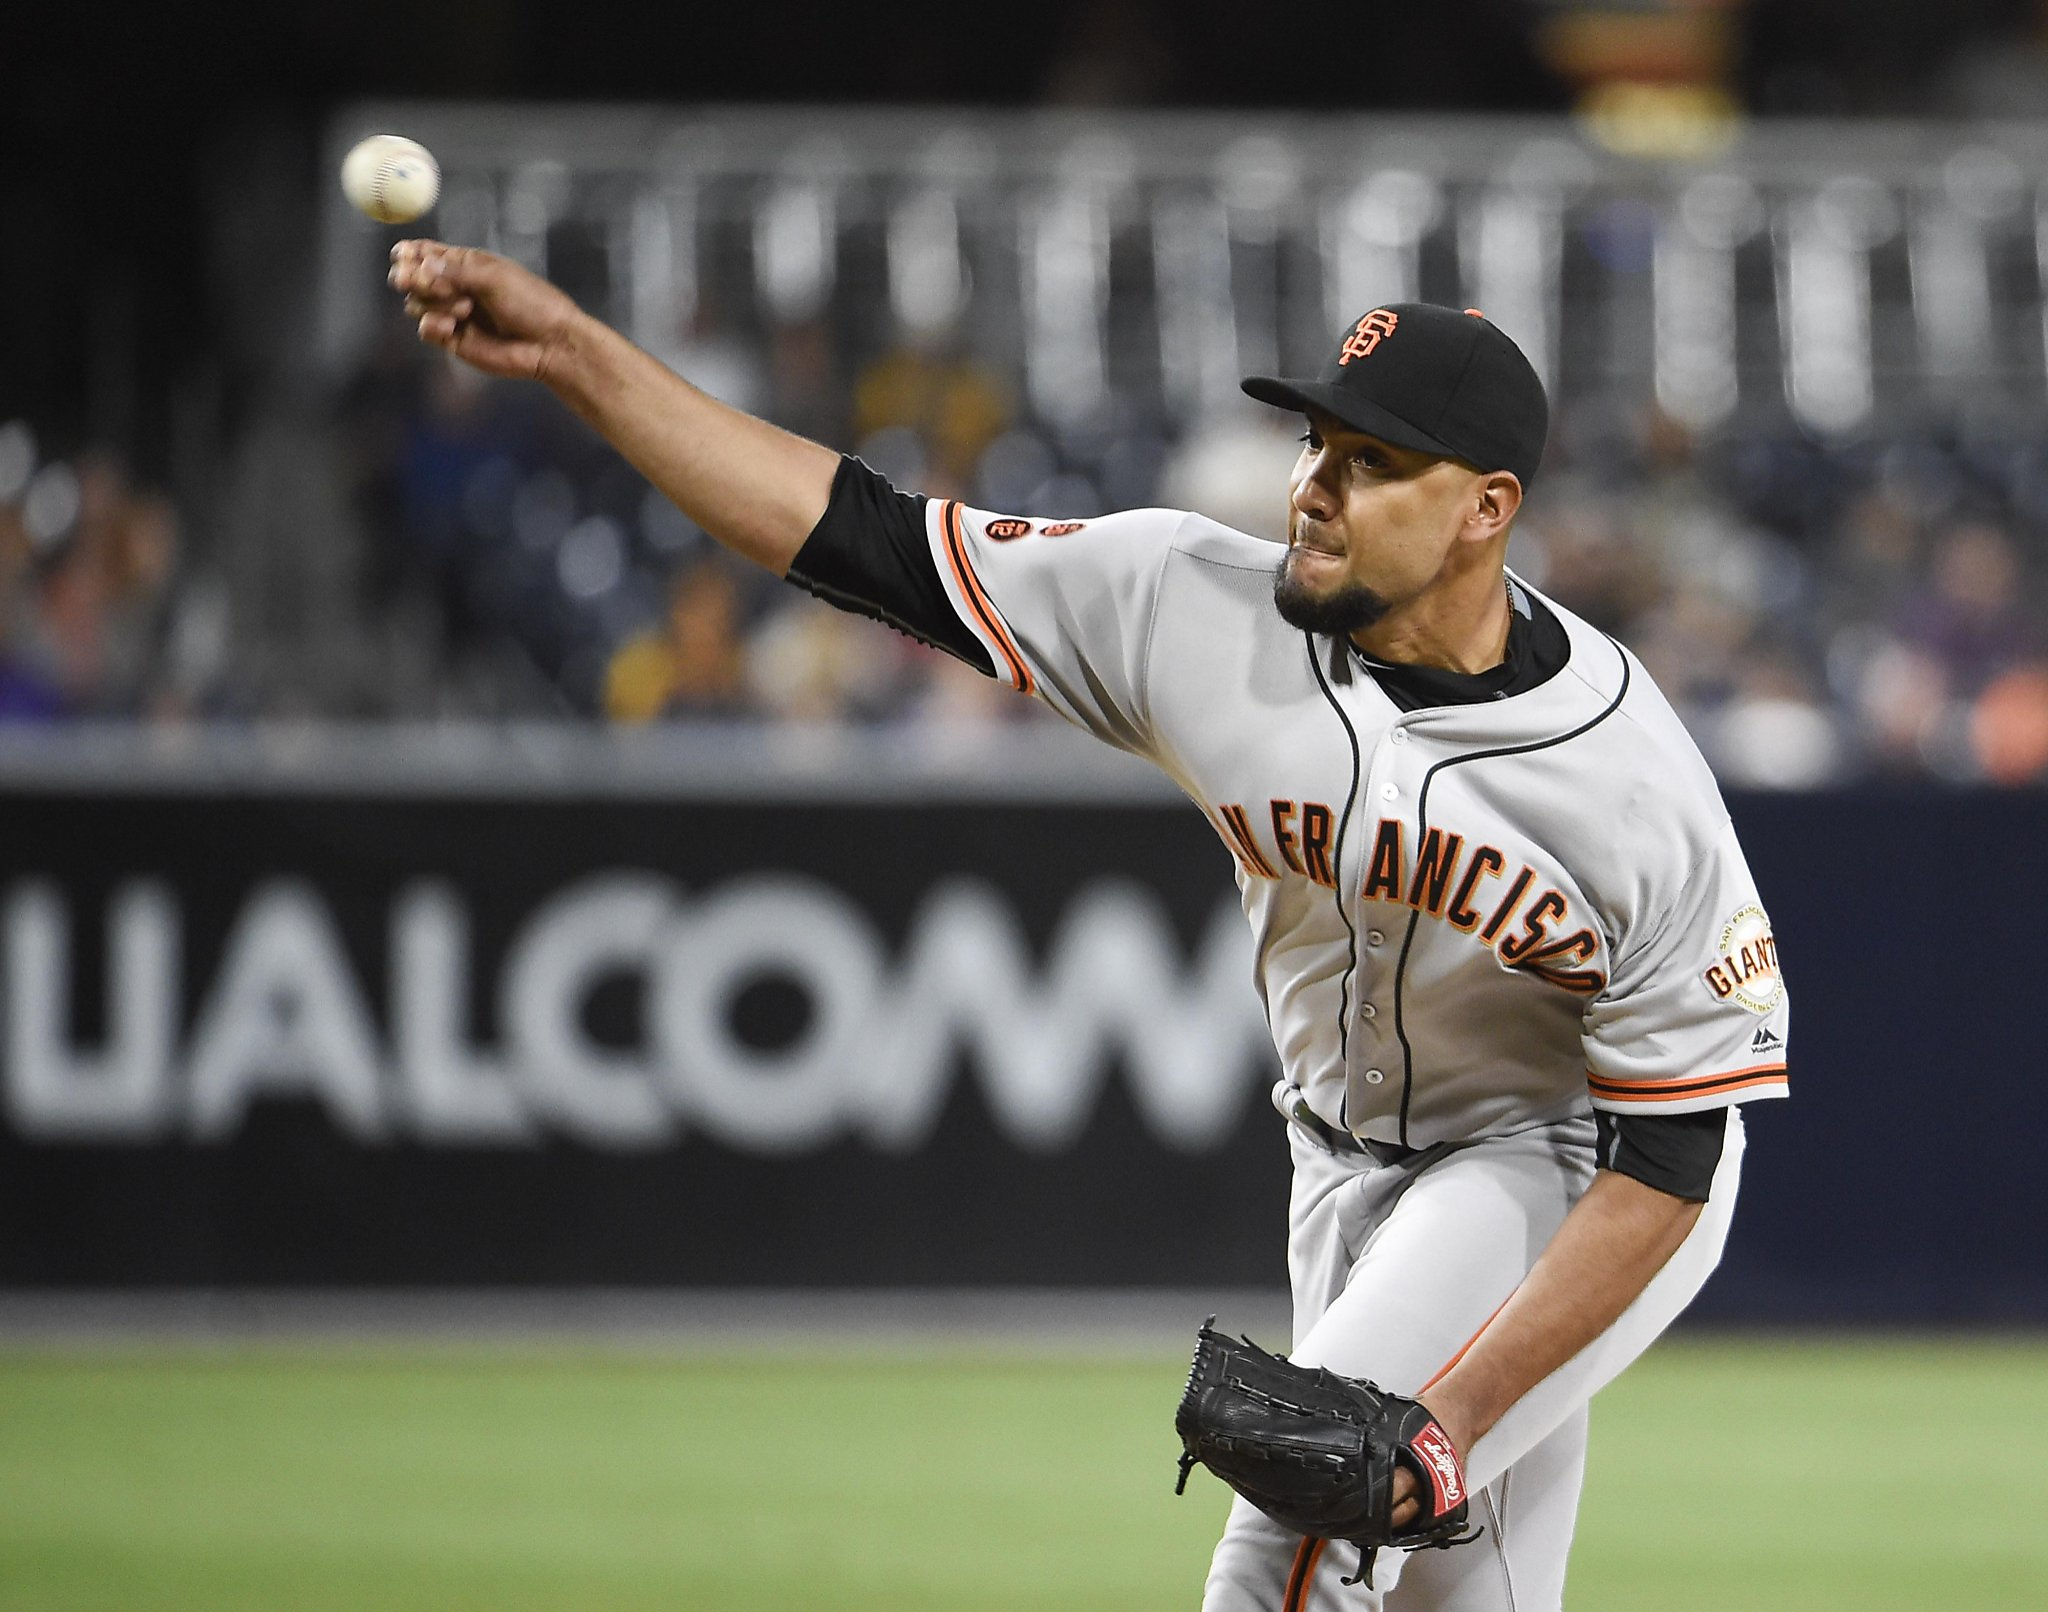 Giants cannot gain traction, fall meekly to Padres - SFGate